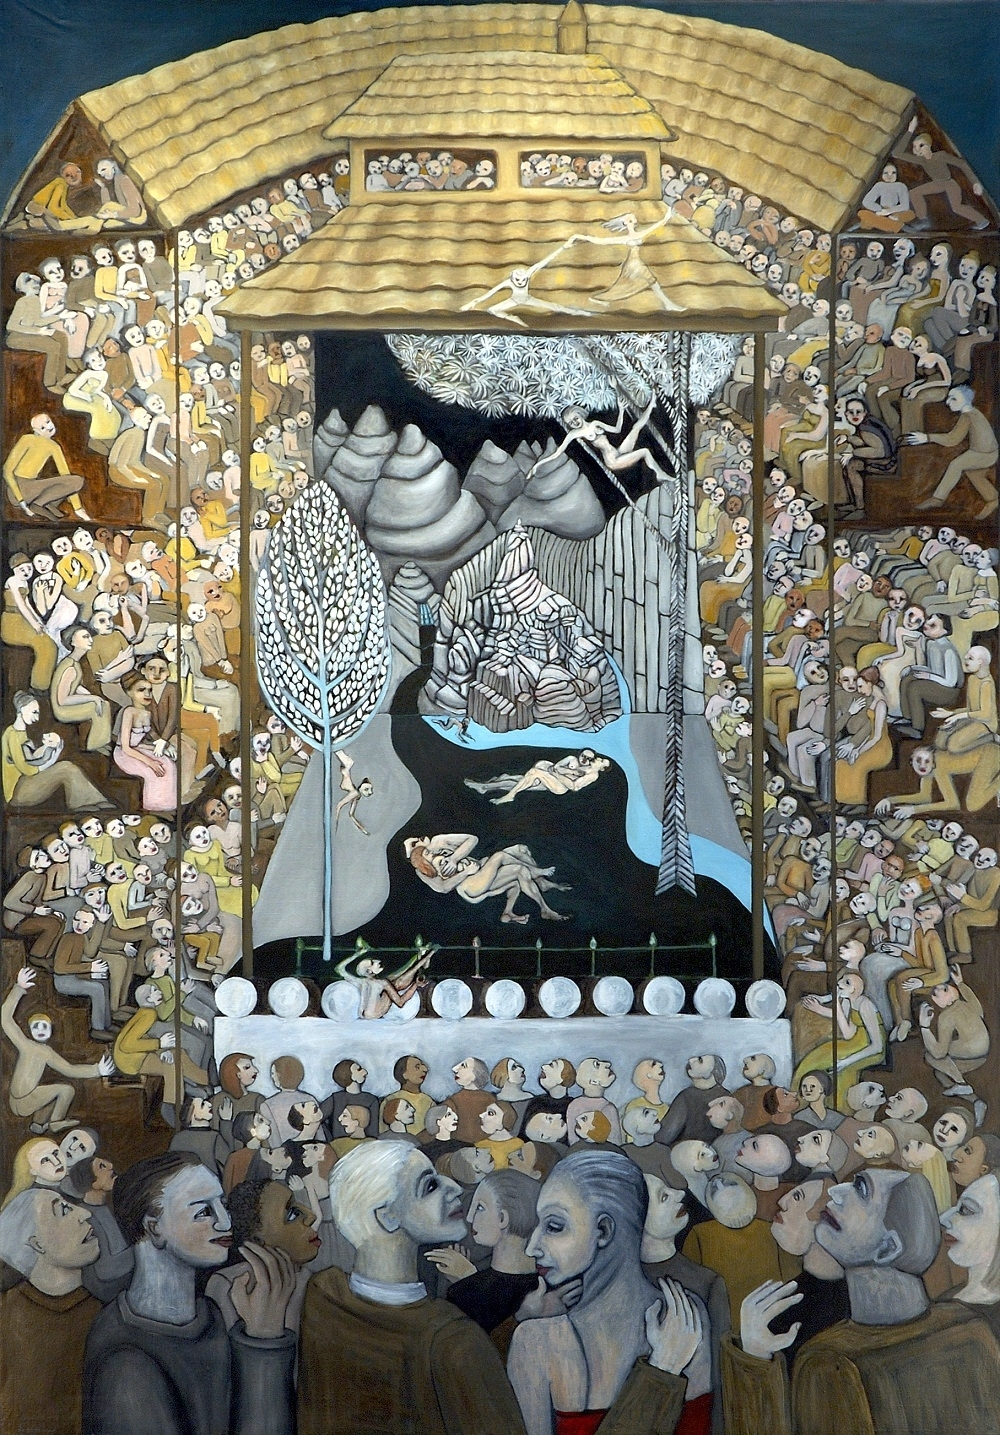 A Midsummer Night's Dream, 6 ft x 4 ft, 182.88 cm x 121.92 cm, oil on linen.